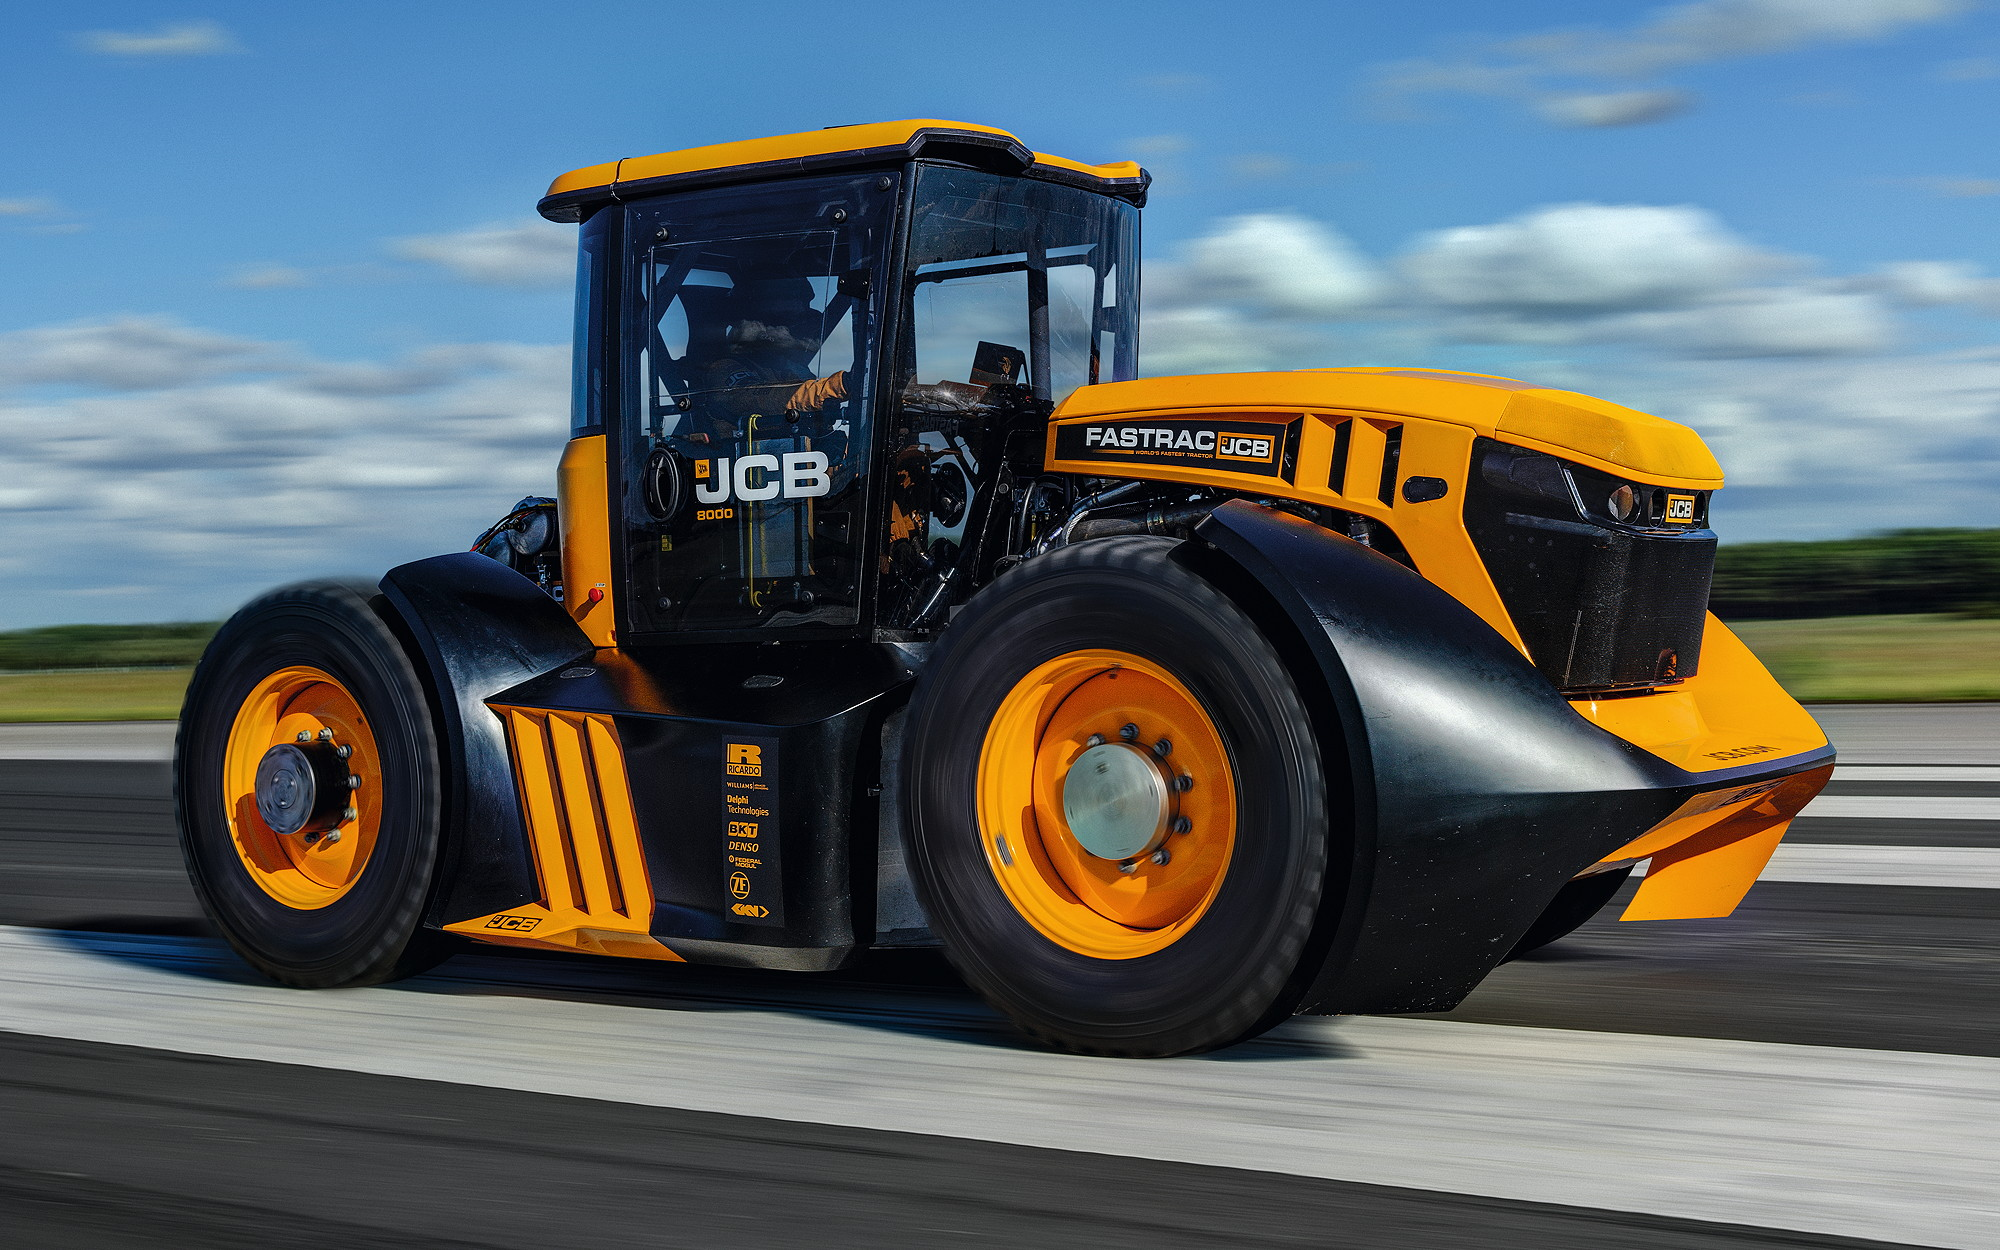 Guy Martin's record-breaking JCB Fastrac 8000 June 2019